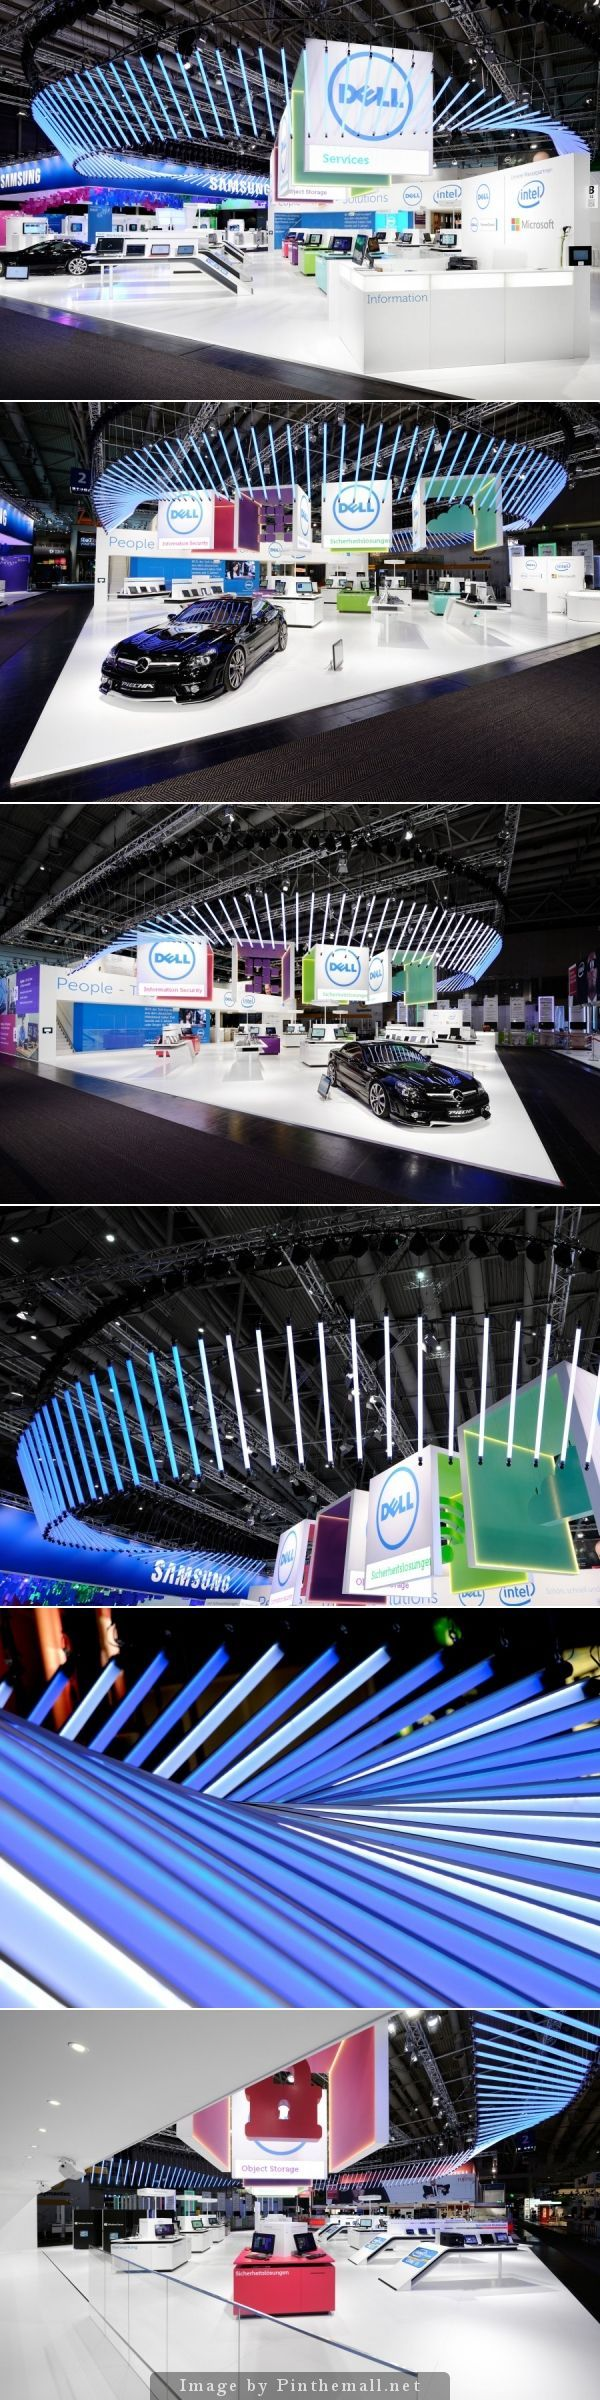 Can You Trade In A Car With Expired Registration : trade, expired, registration, Exhibition, Display, Design, Point, Purchase, Cosmetic, Design,, Stand, Corporate, Exhibitions